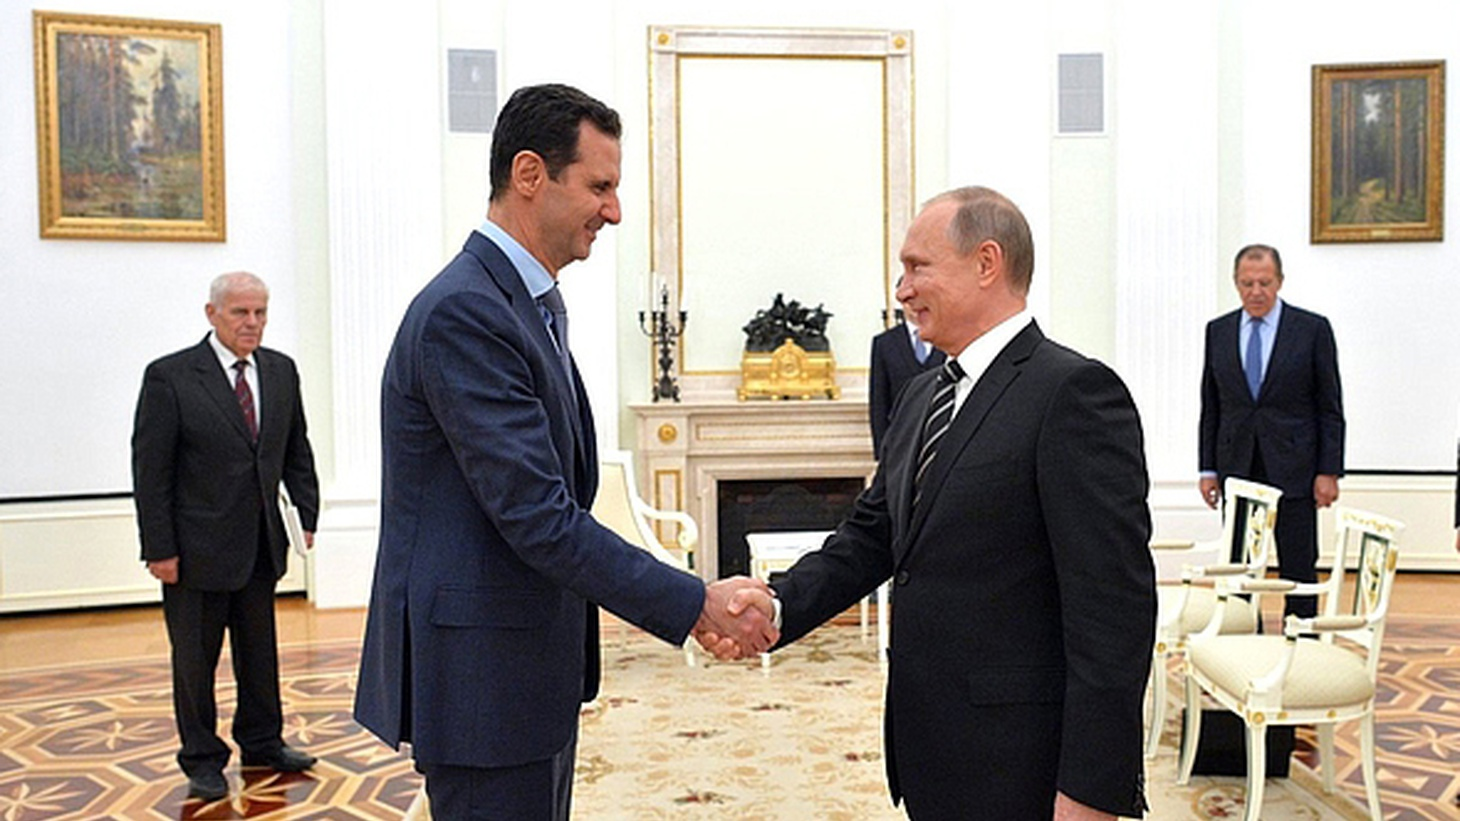 It appears that Syria's President Bashar al-Assad is not staying home anymore because he's afraid of a coup. Yesterday he visited Moscow at the invitation of Vladimir Putin, who has been giving military support to Assad's regime.